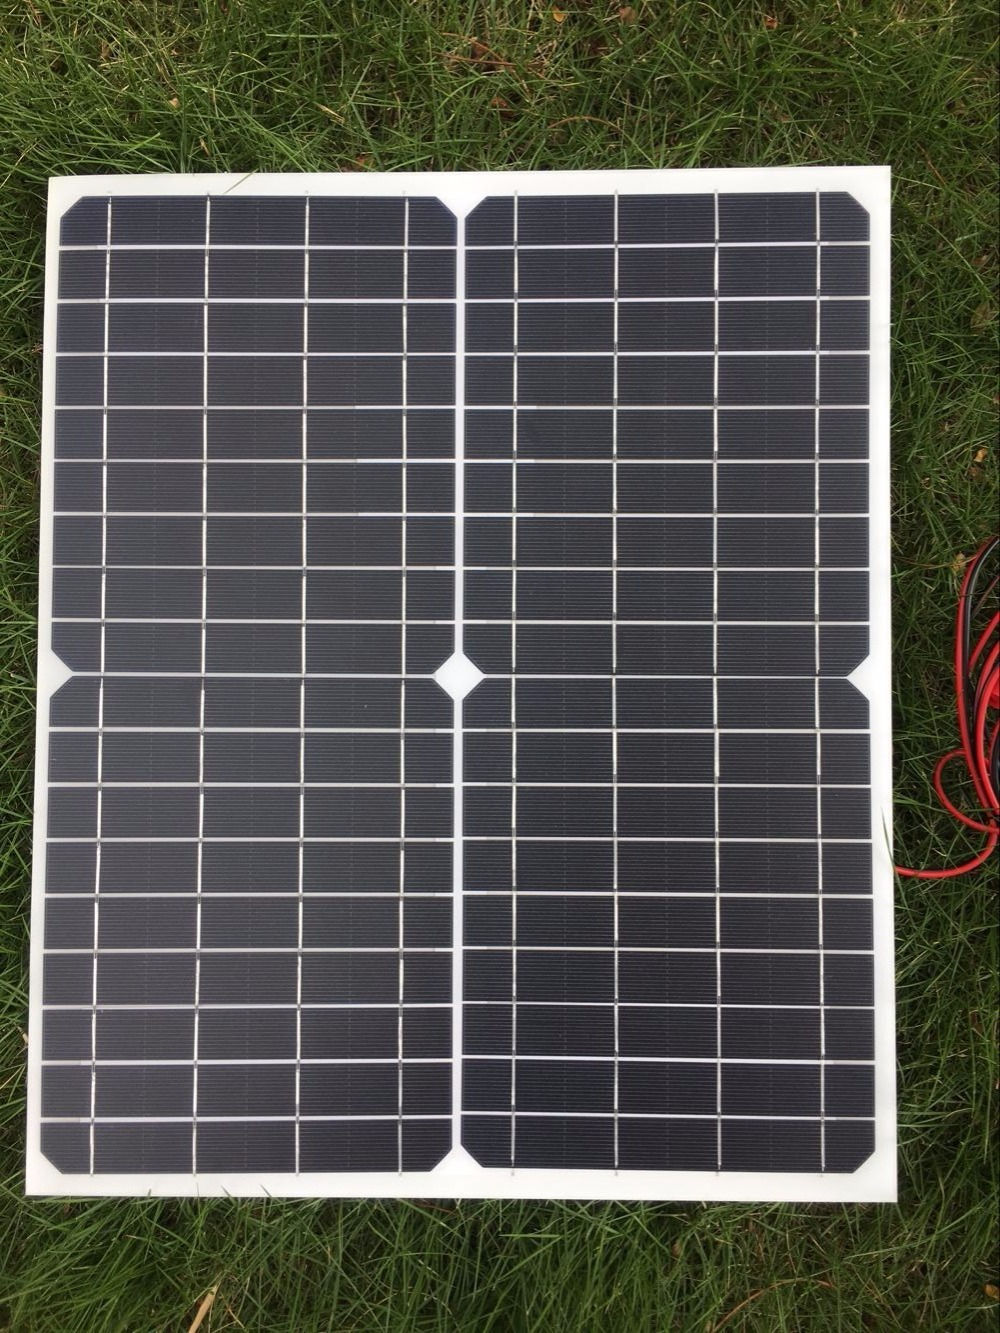 CNH 20W 18V Solar Panel Energy Semi Flexible Monocrystalline For RV Car Boat Battery Charger Solar Cells Module+ high quality 18v 2 5w polycrystalline stored energy power solar panel module system solar cells charger 19 4x12x0 3cm